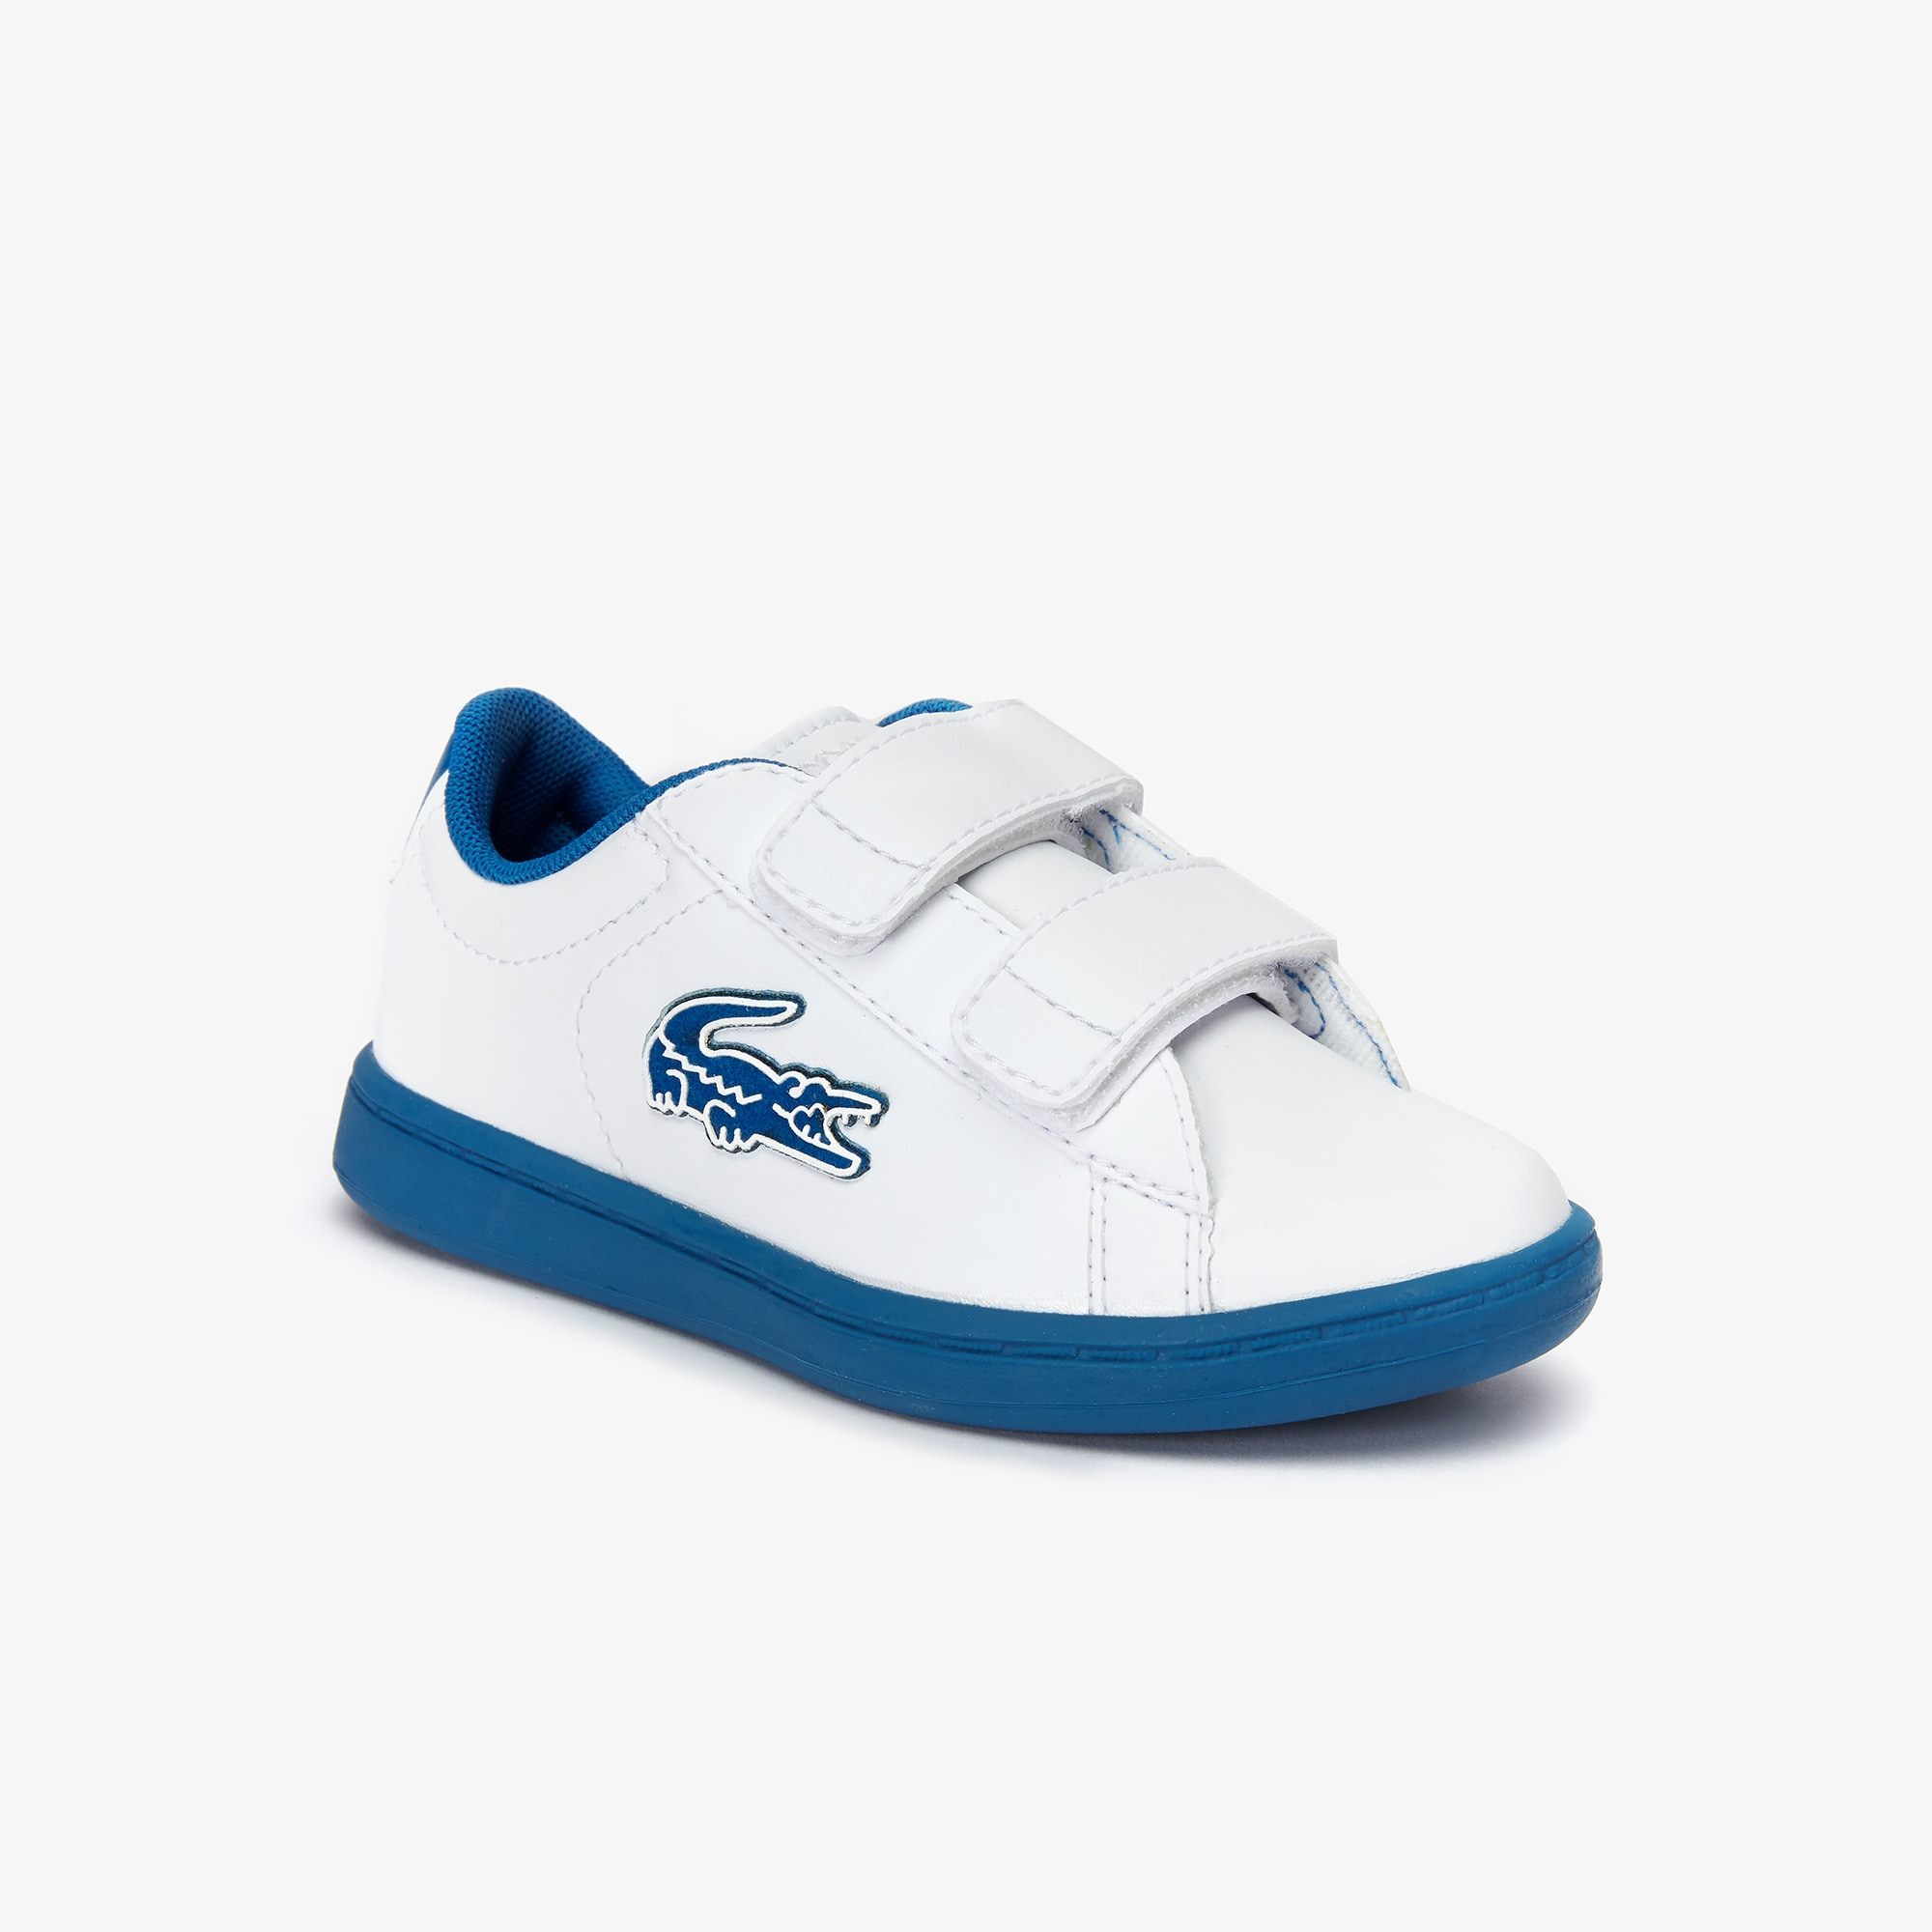 spitz lacoste for toddlers, OFF 77%,Cheap!